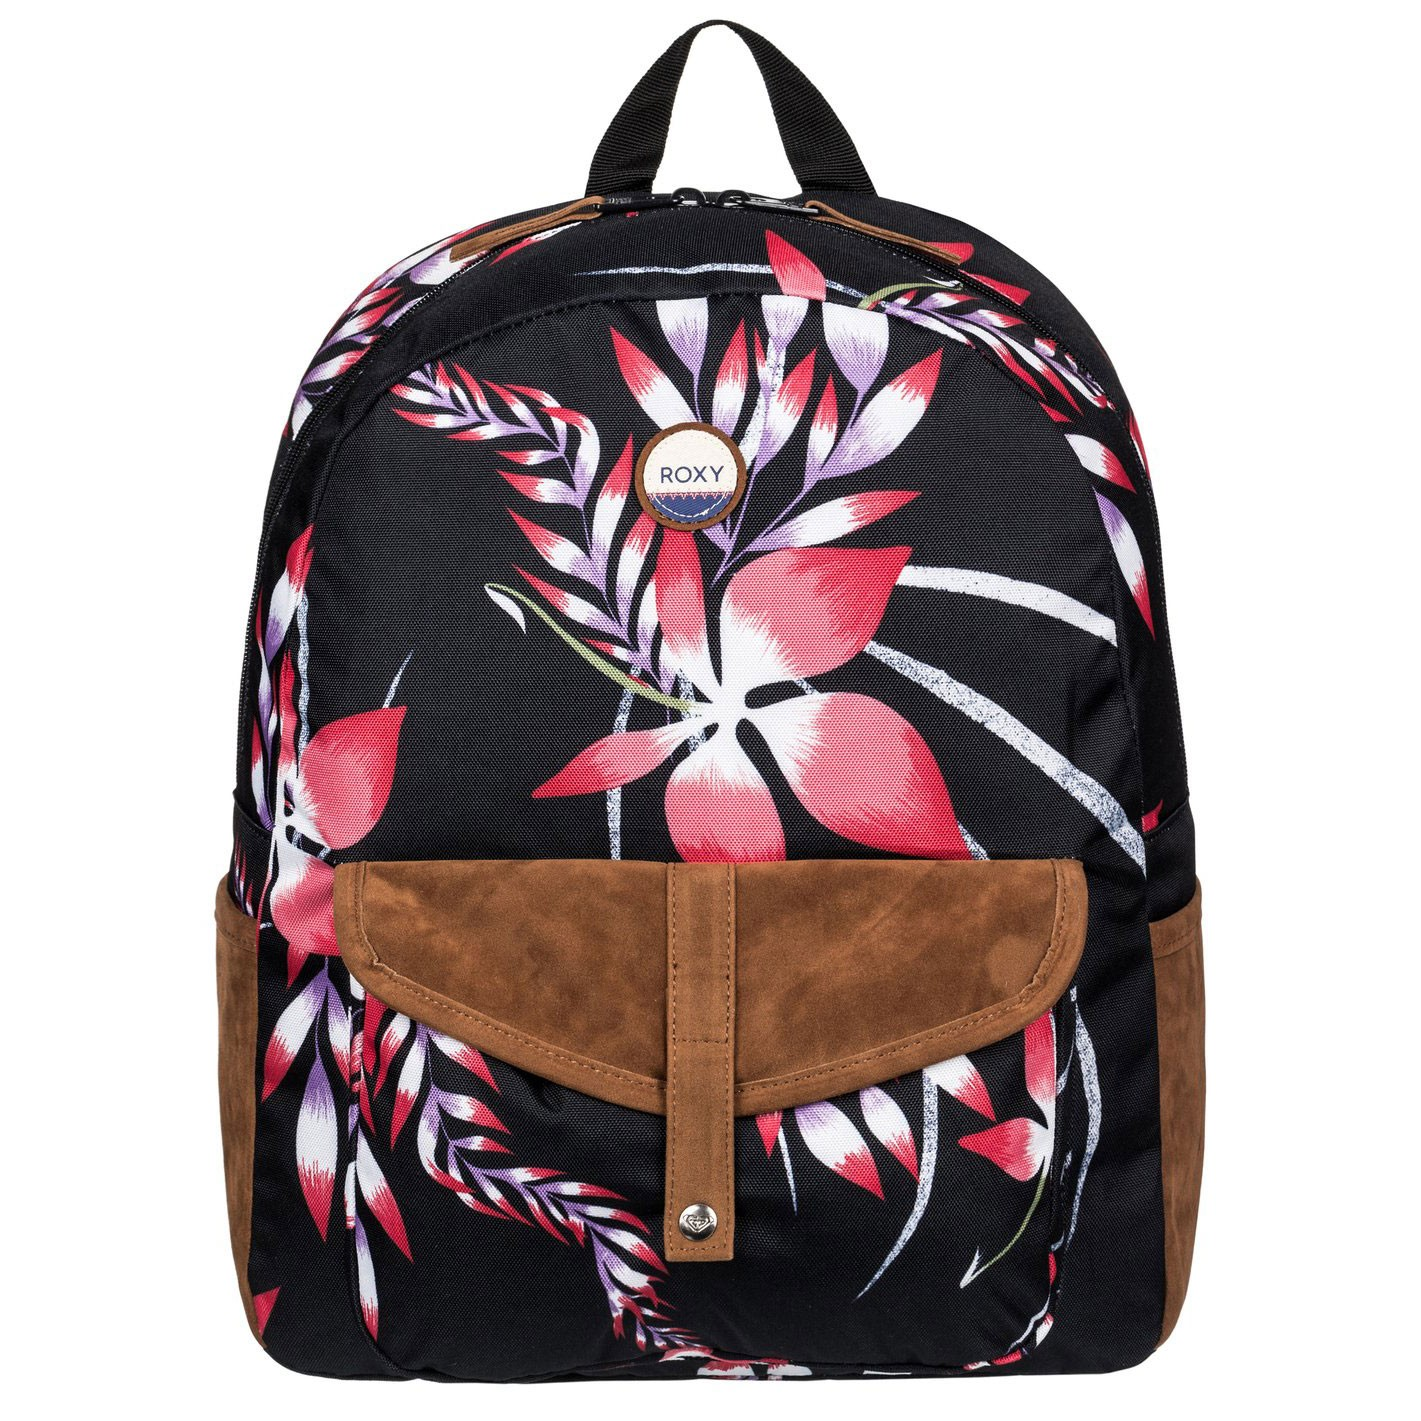 Batoh Roxy Carribean anthracite mistery floral